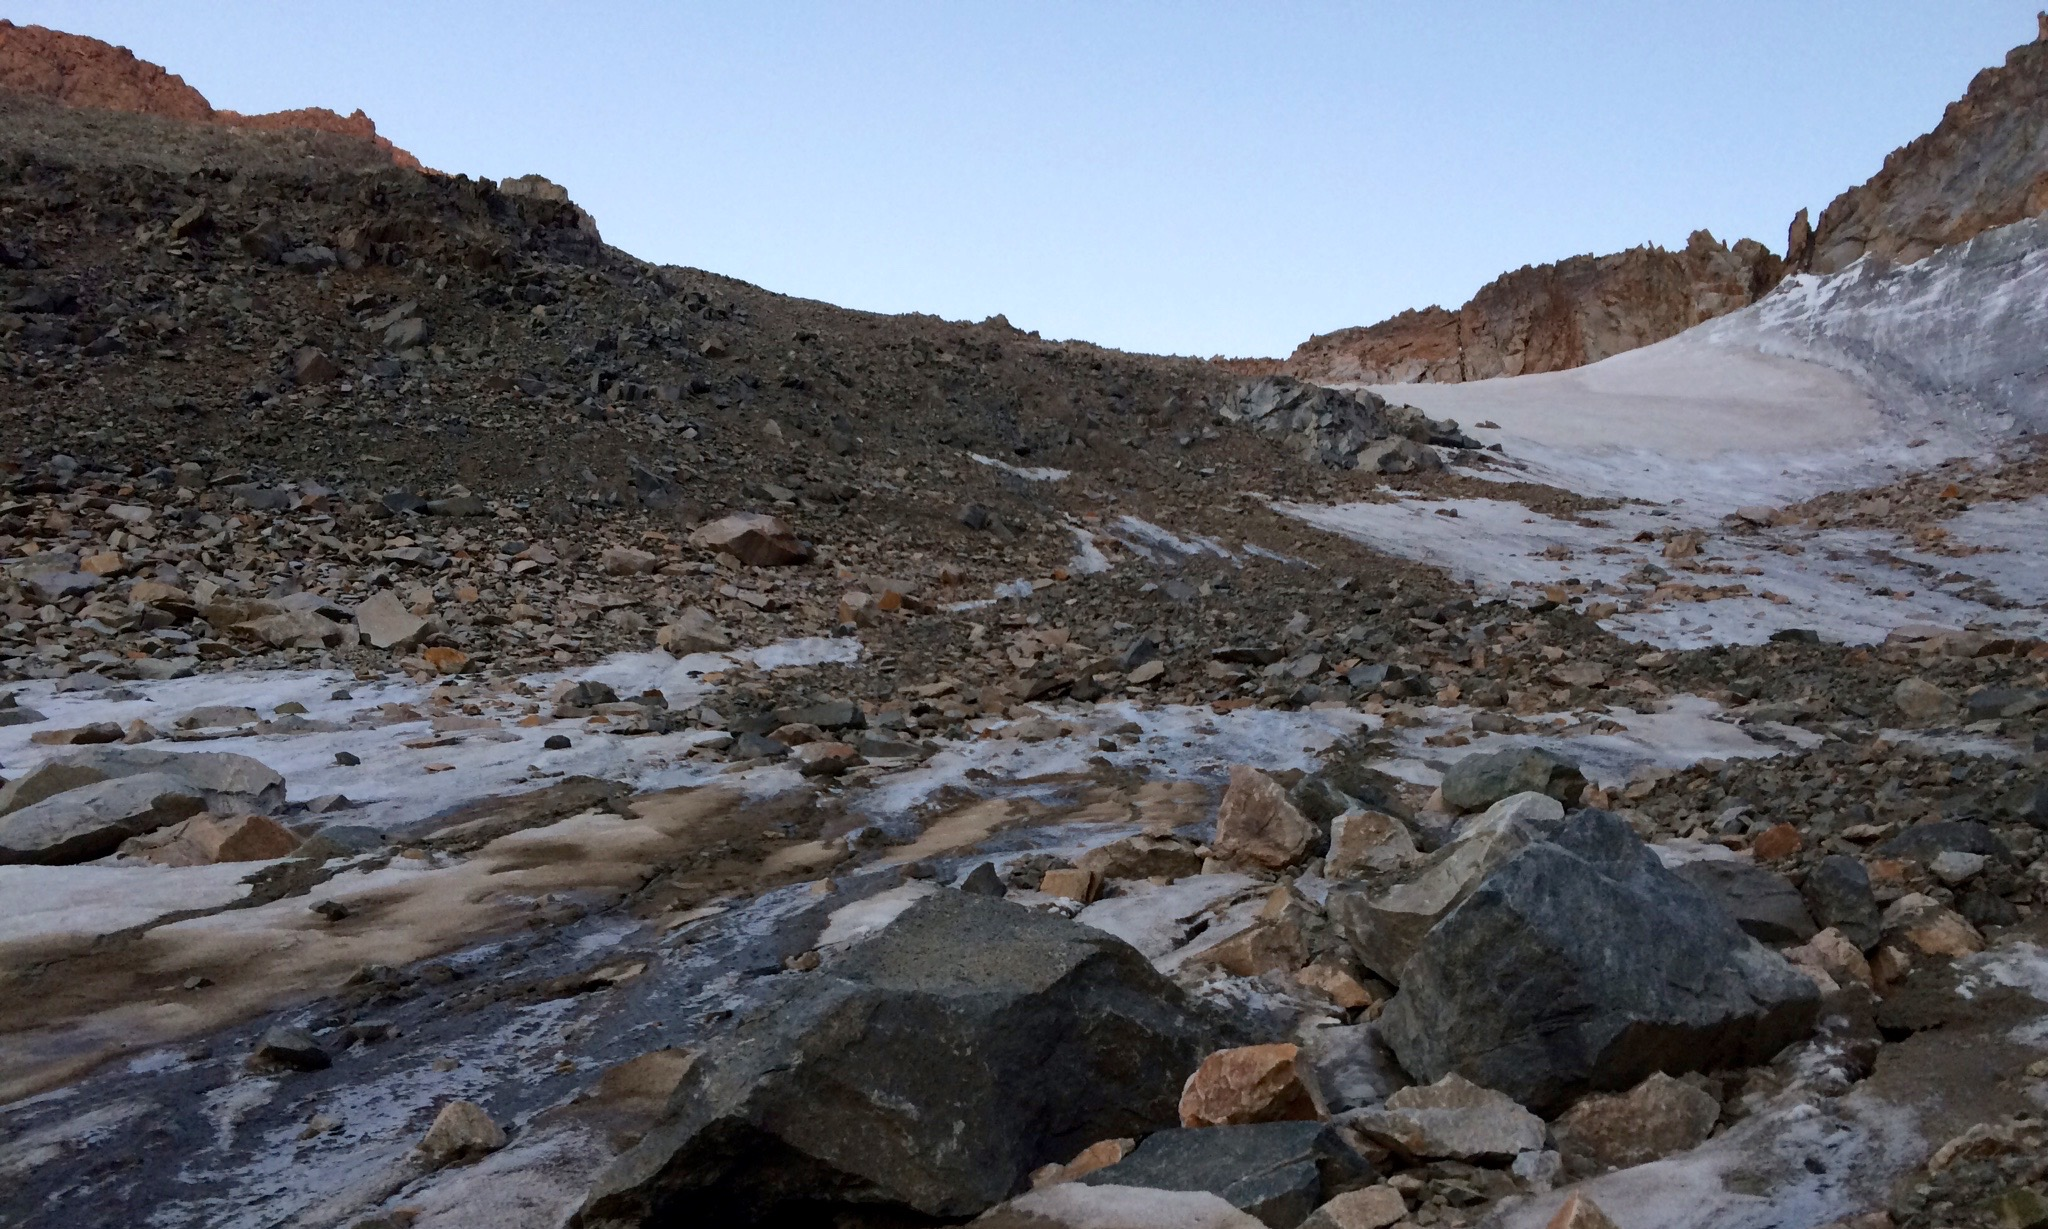 Scree for days on the way down to Avalanche Lake as the light fades away.  Photo Credit: Vasu Sojitra